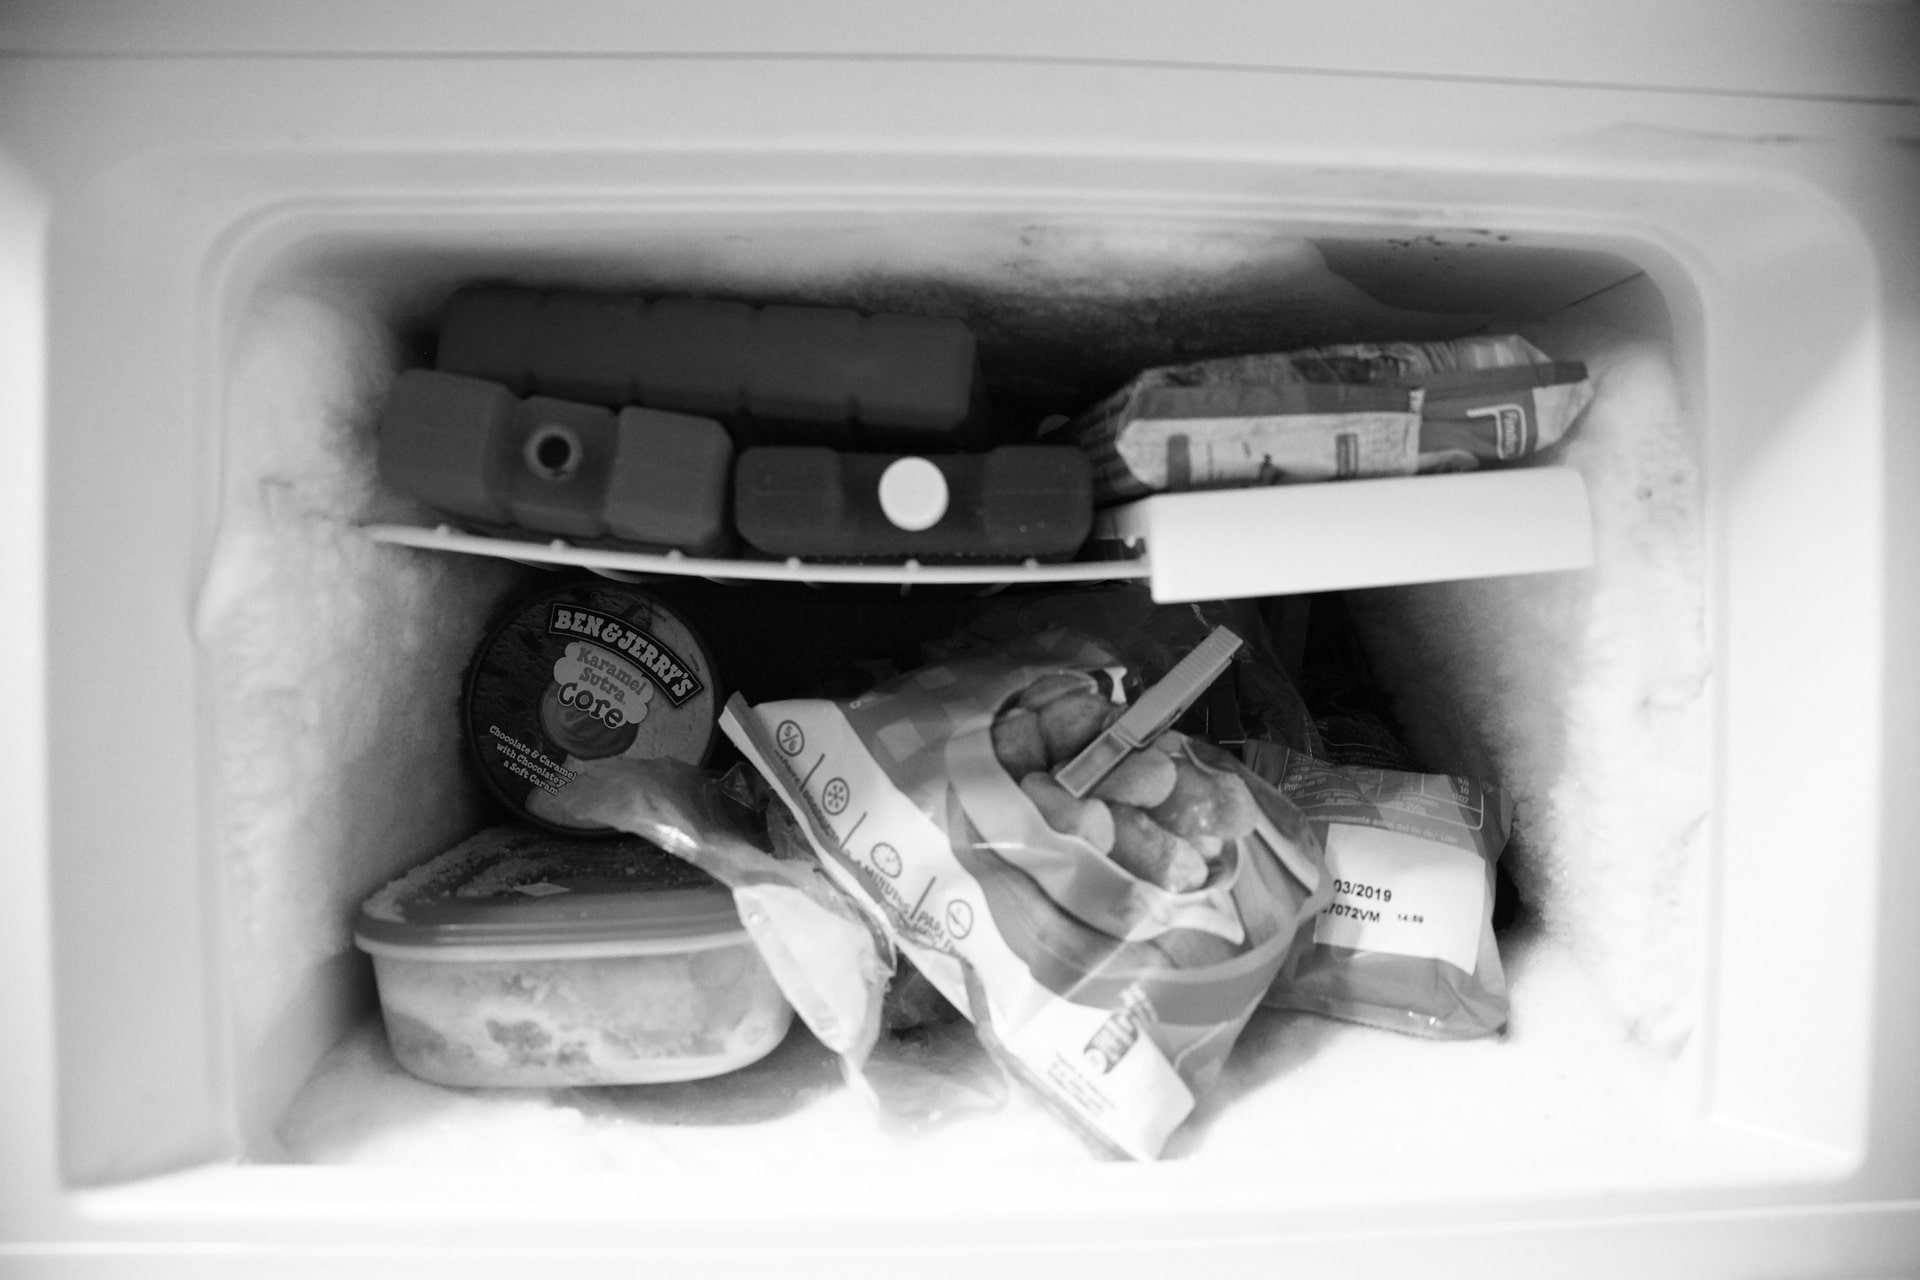 inside of a freezer